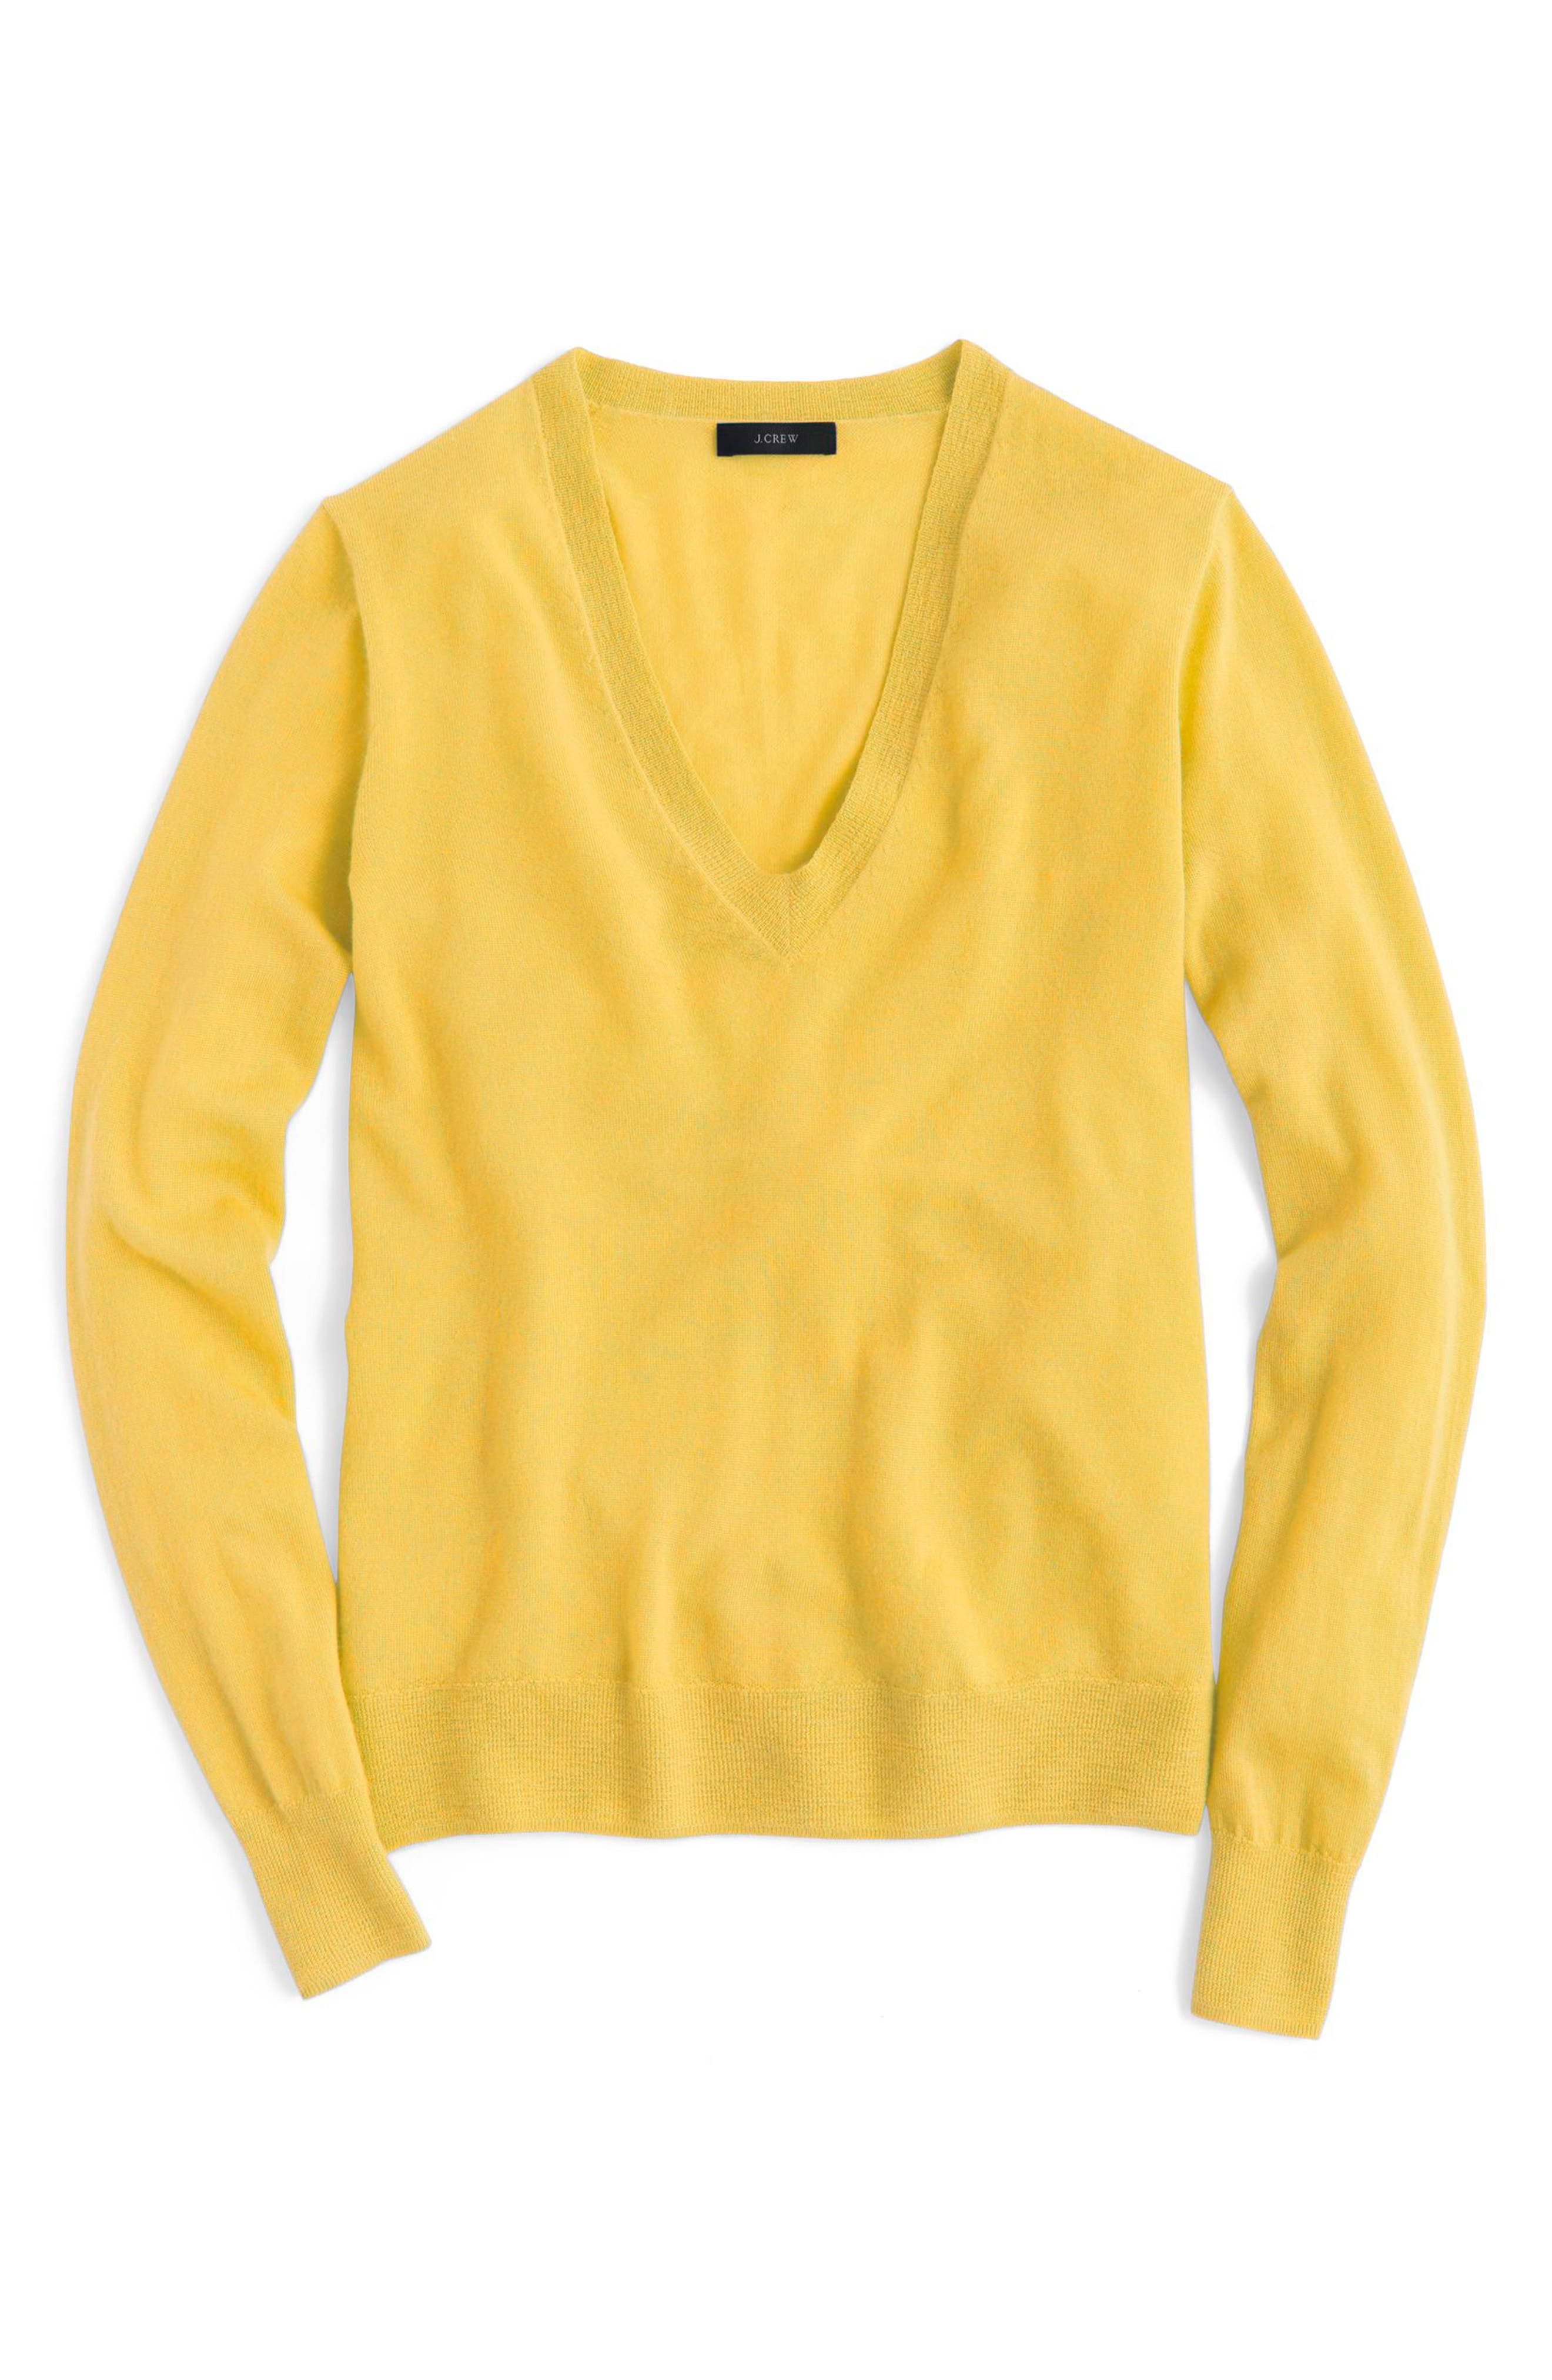 Main Image - J.Crew V-Neck Italian Featherweight Cashmere Sweater